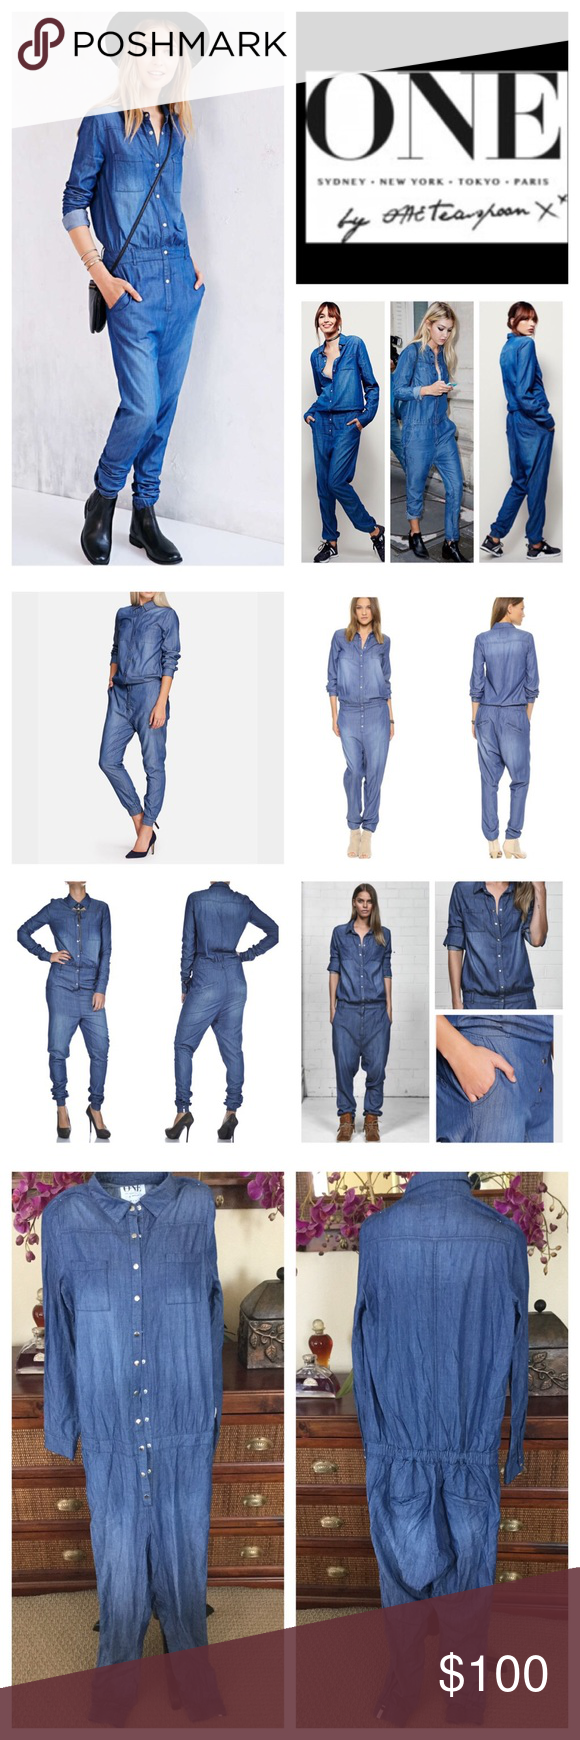 "Free People One Teaspoon Defender Jumpsuit. NWOT. Free People One X One Teaspoon Defender Utility Chambray Jumpsuit, 50% cotton, 50% bamboo, machine washable, 29"" elastic waist which stretches up to 34"", 19.5"" arm inseam, 10"" front rise, 14"" back rise, 26"" inseam, long sleeves with snap cuffs, breast pockets, side pockets, back pockets, lightweight, belt loops, collar at neckline, relax fit through the body, slight dropped crotch, elastic ankle cuffs with One Teaspoon label on left leg…"